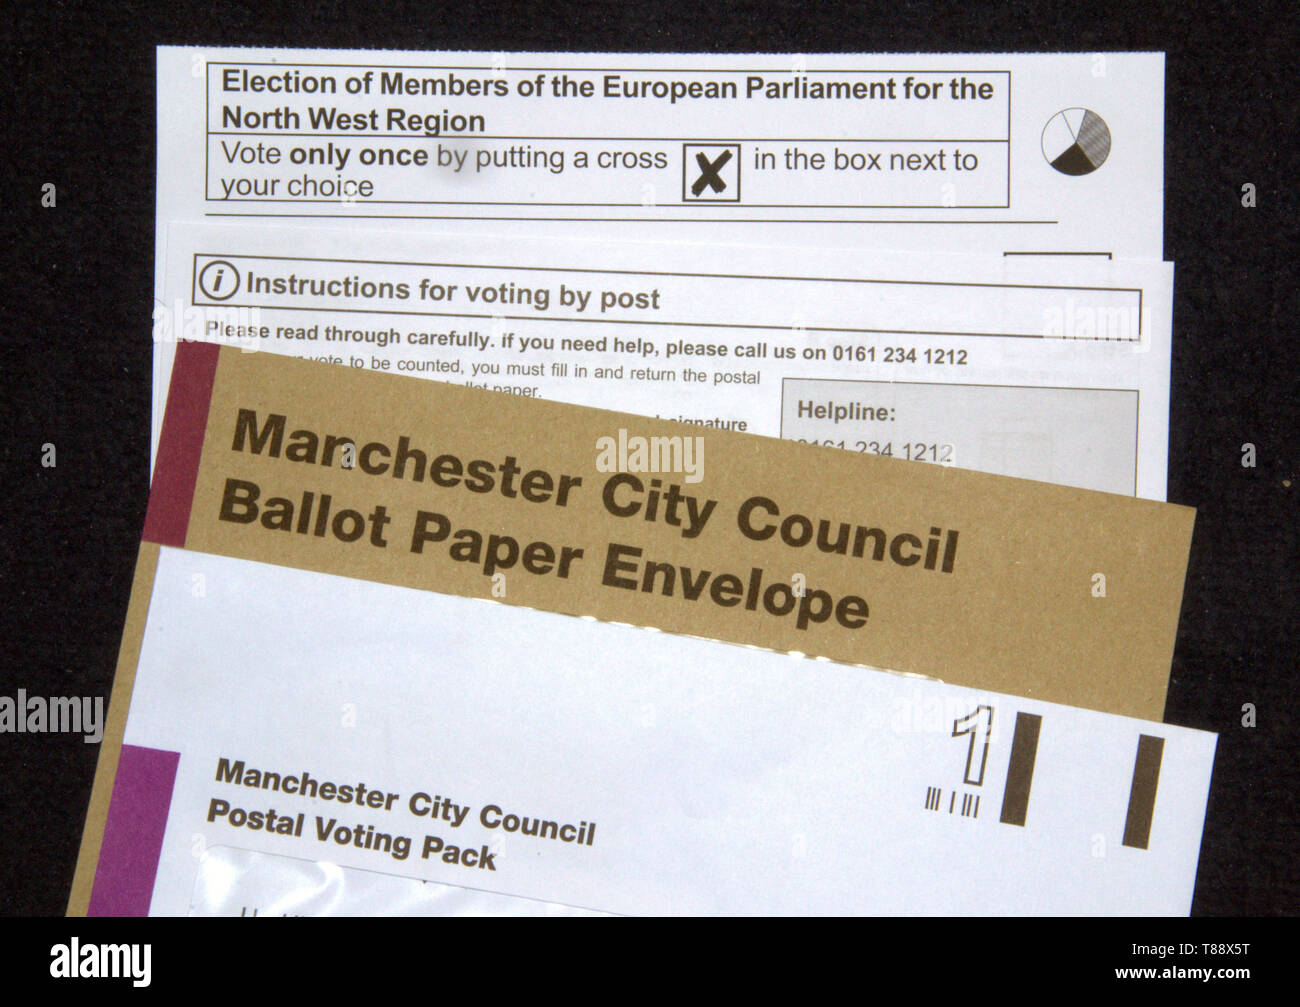 Postal voting pack sent to a voter by Manchester City Council in the United Kingdom for the European Elections on 23rd May 2019 - Stock Image